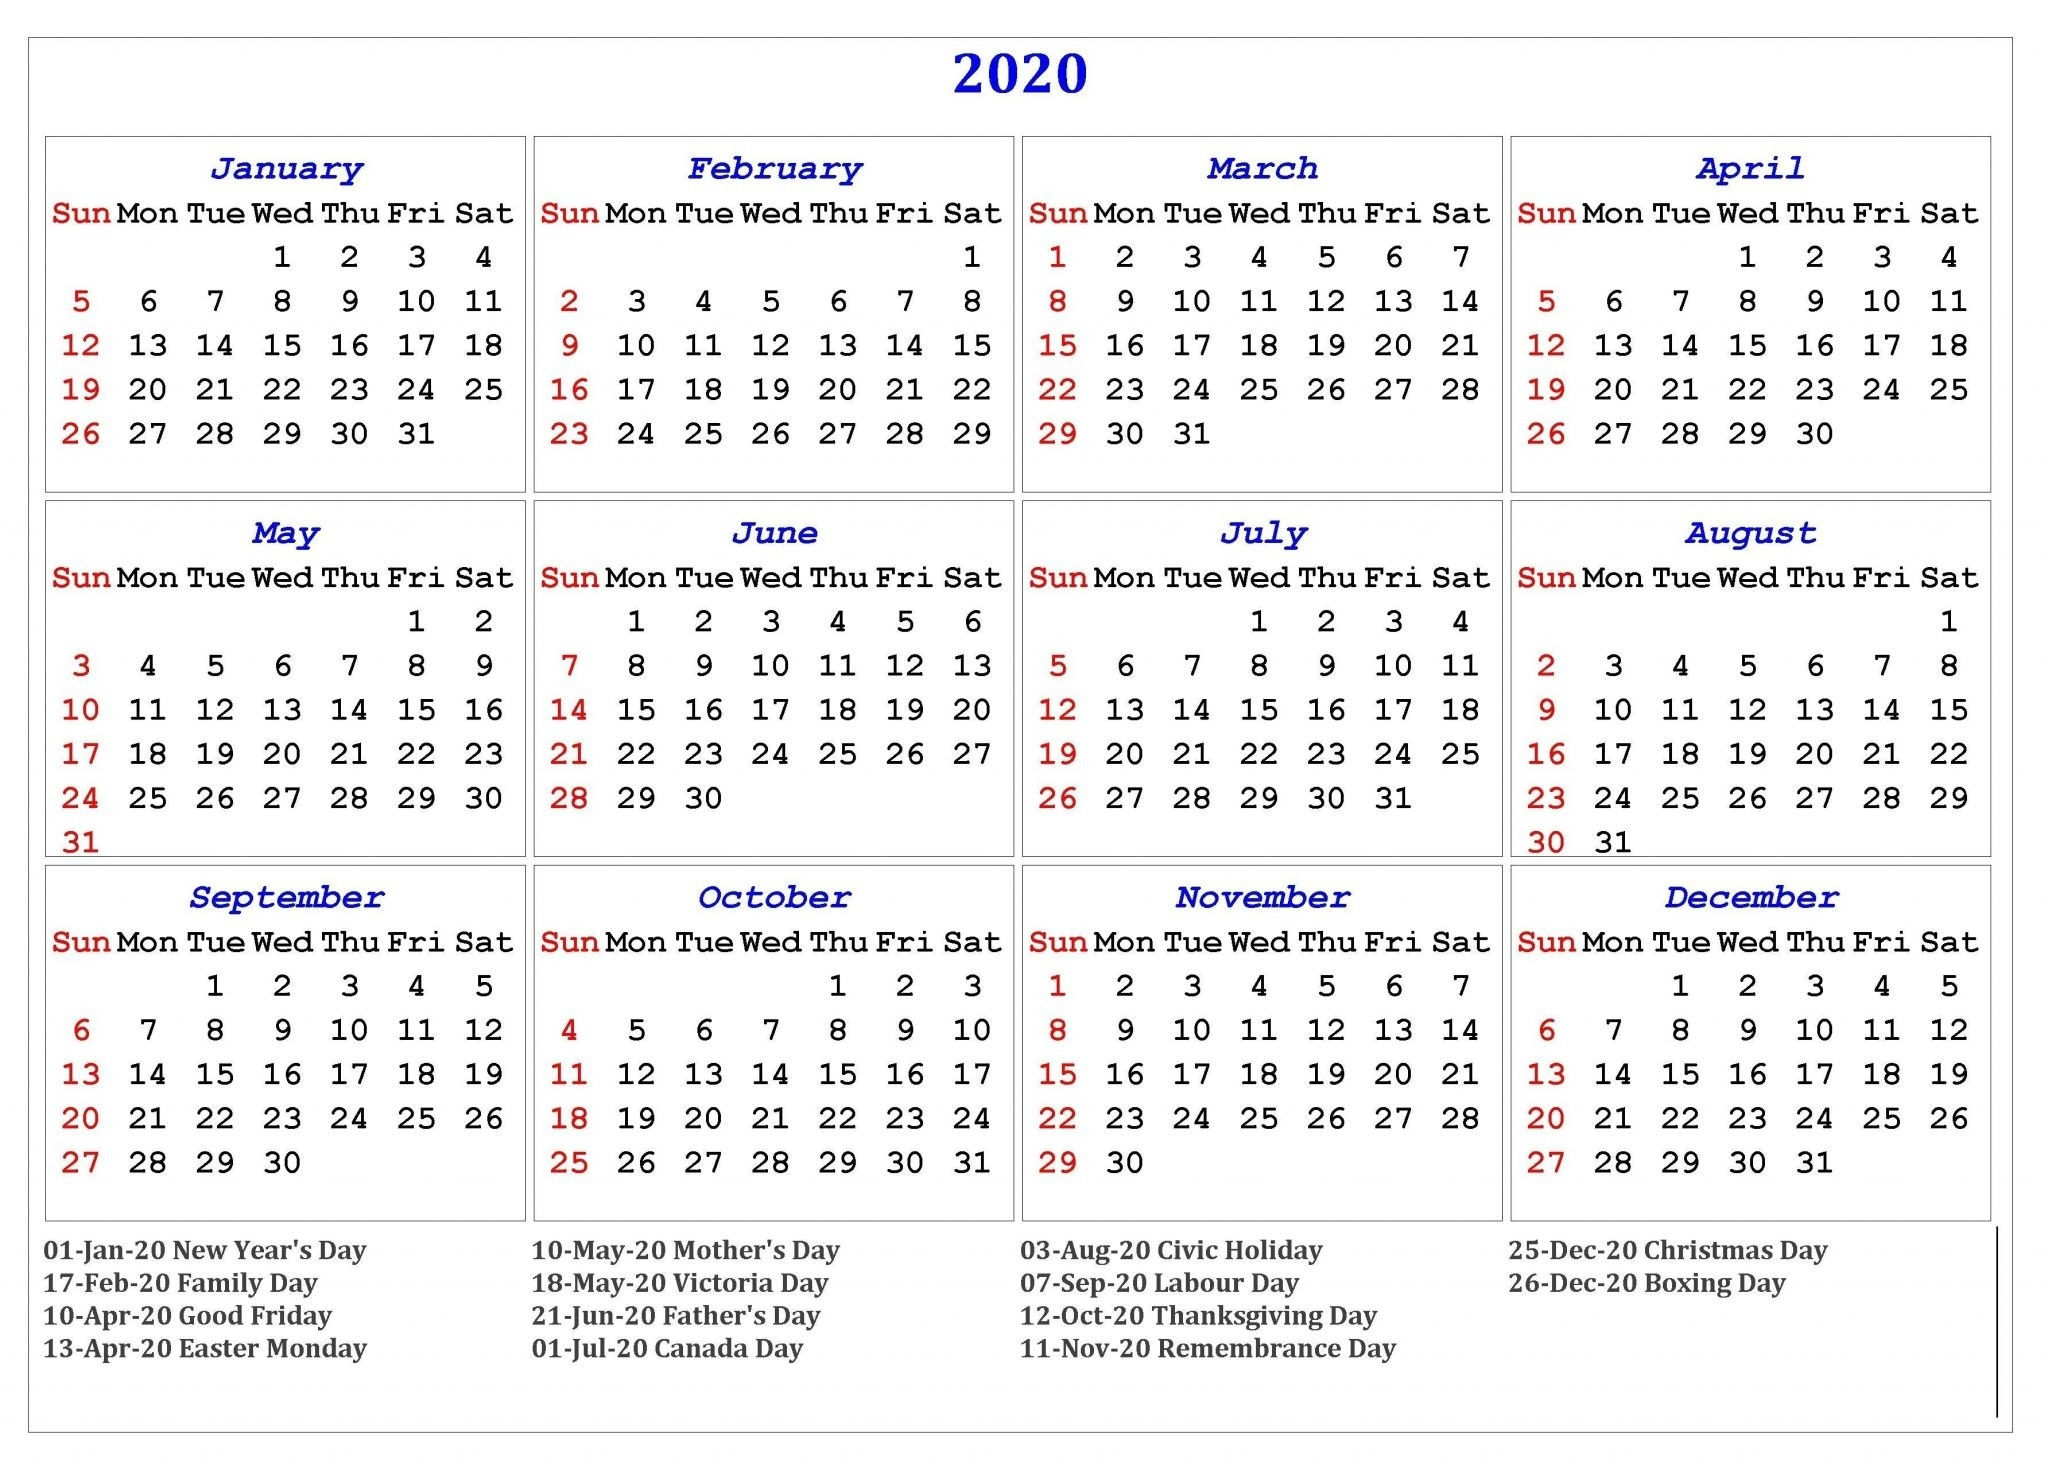 Free Yearly Printable Calendar 2020 With Holidays-Monday To Sunday Blank Calendar 2020 With Holidays